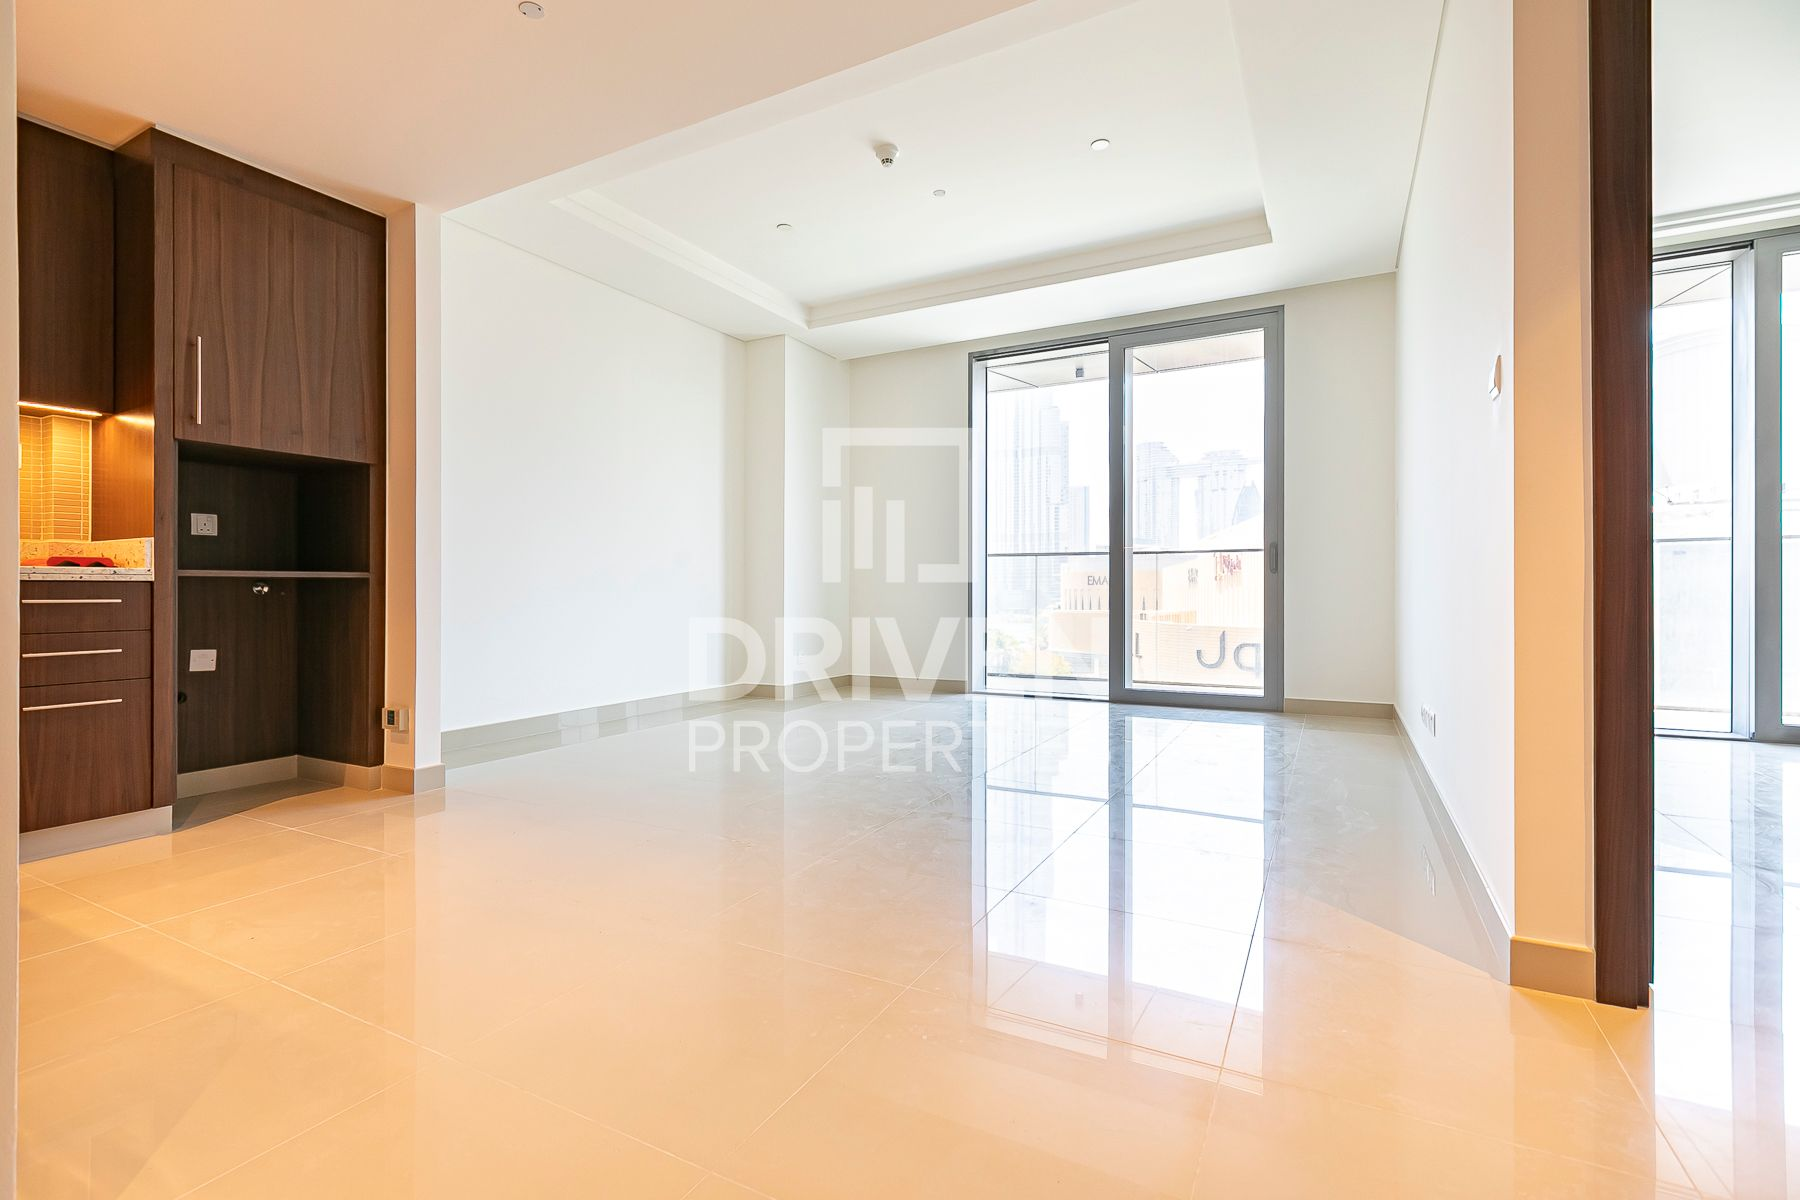 Brand New 1 Bedroom Apartment, Chiller free